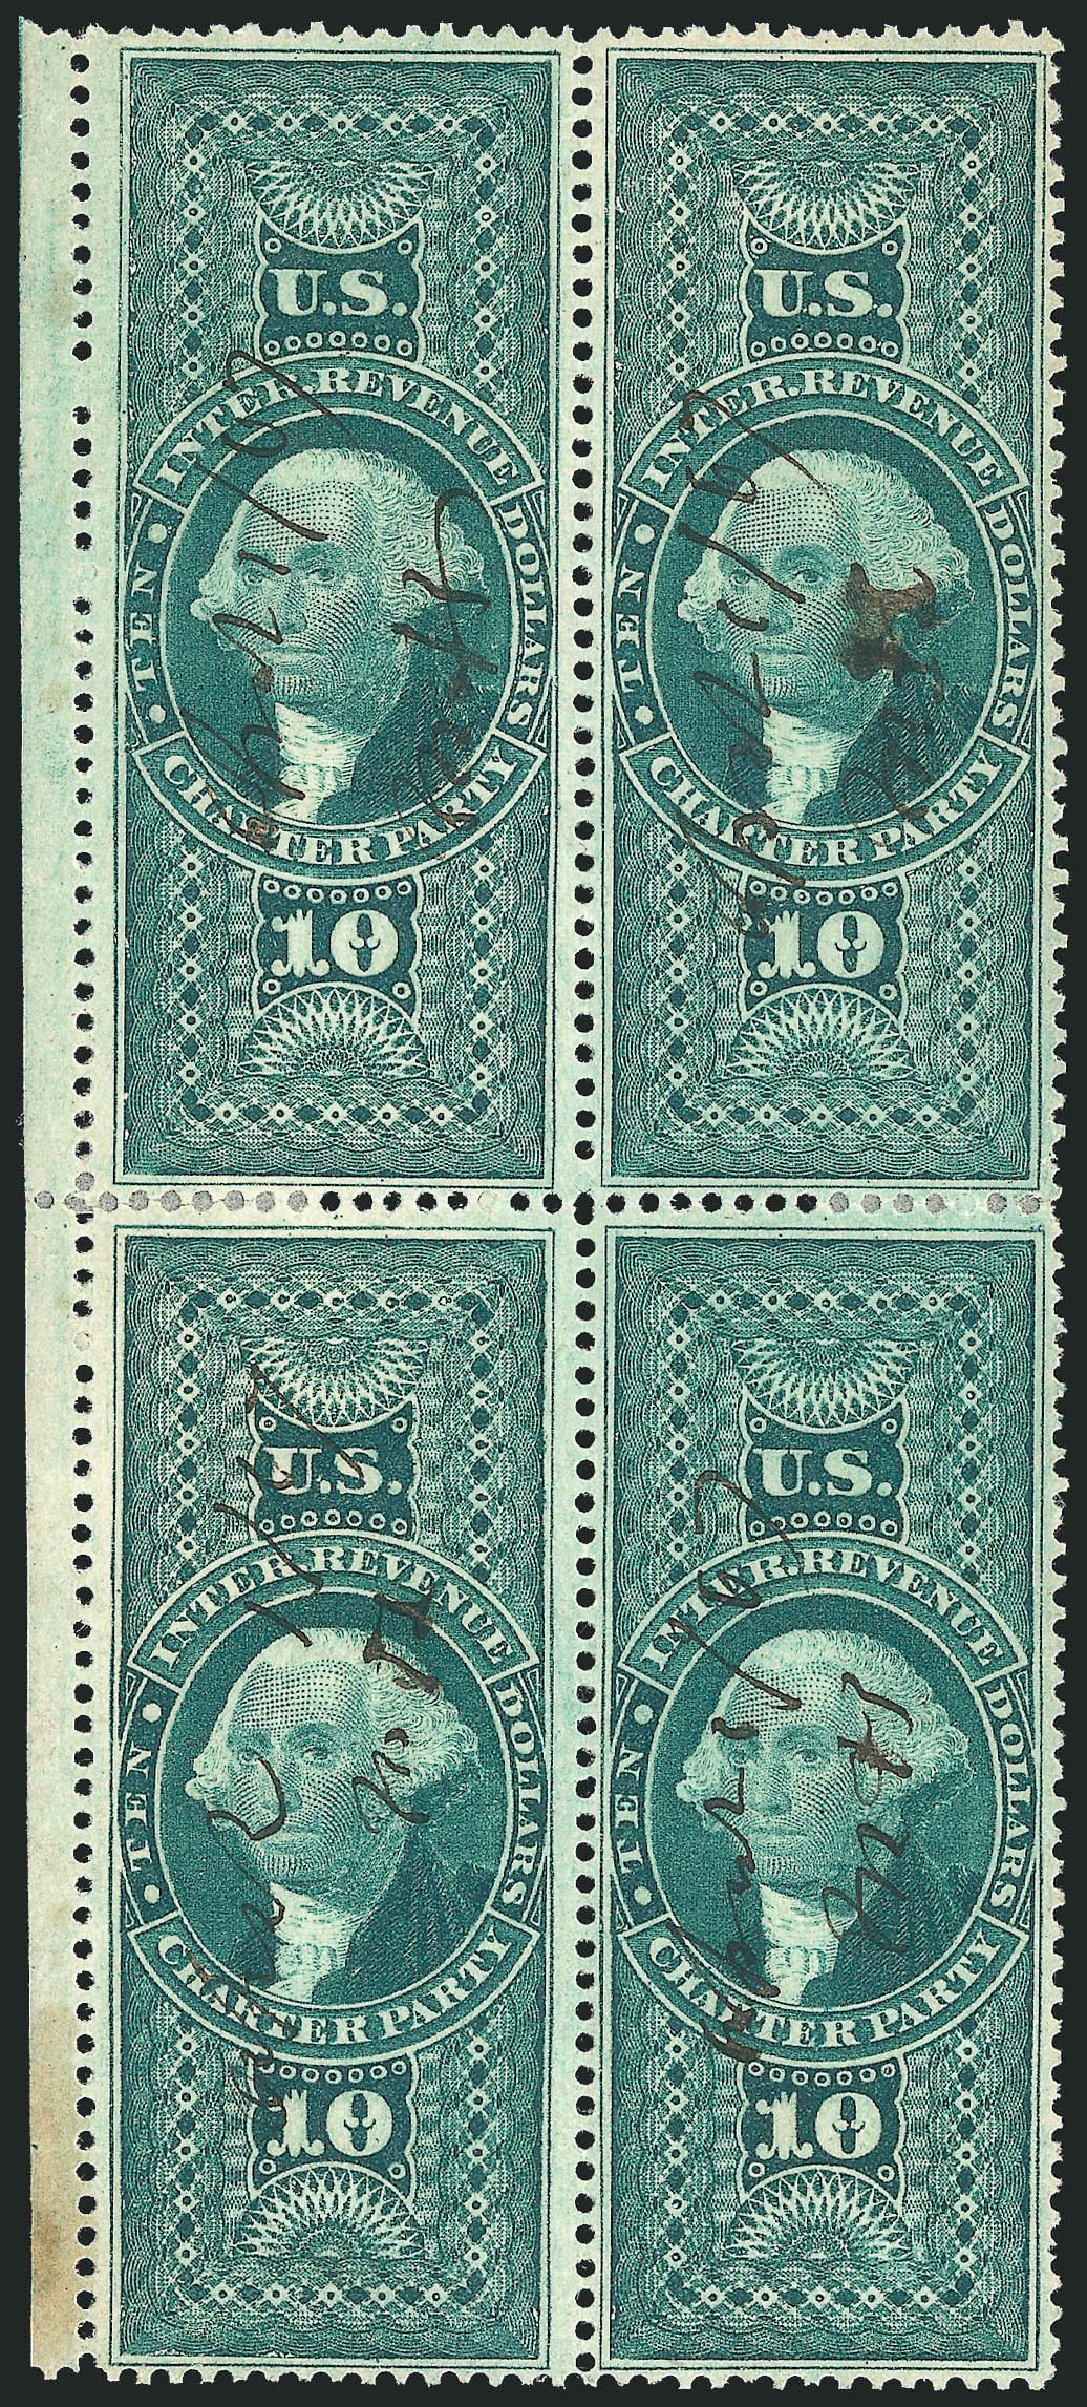 US Stamp Value Scott Cat. R93: US$10.00 1862 Revenue Charter Party. Robert Siegel Auction Galleries, Dec 2014, Sale 1089, Lot 441